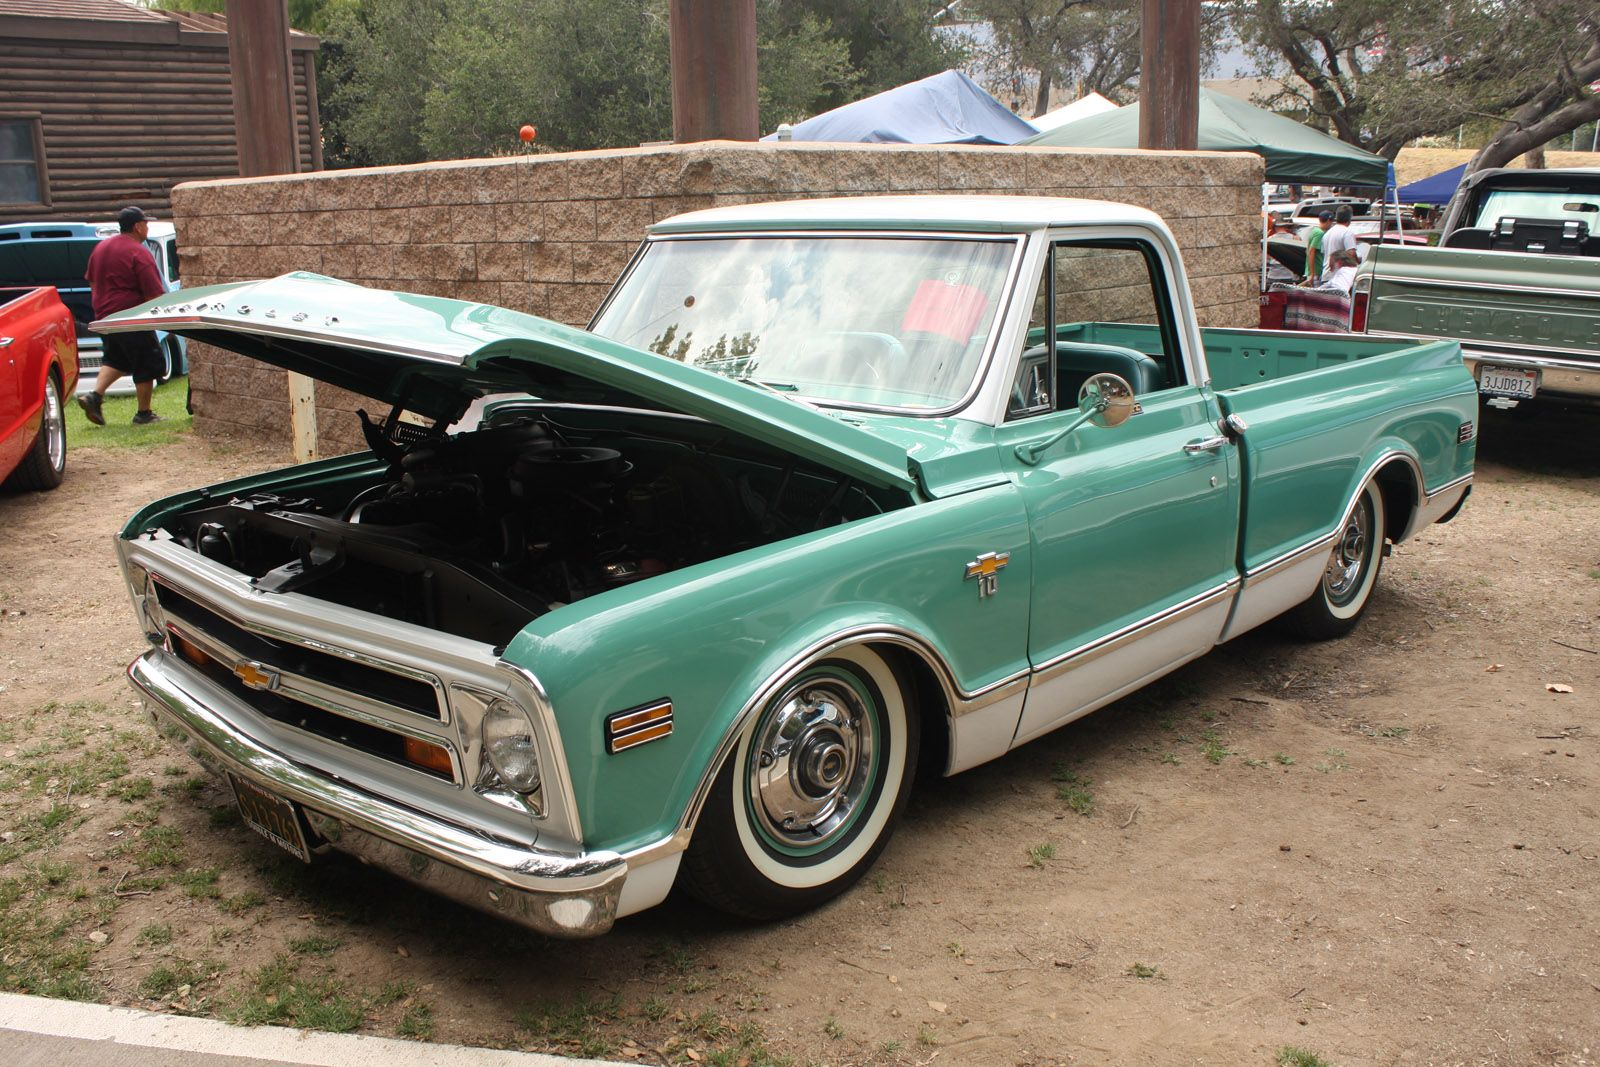 All Chevy 1968 chevy c10 parts : 2013-brothers-15th-annual-chevy-gmc-truck-show-and-shine-23-1968 ...